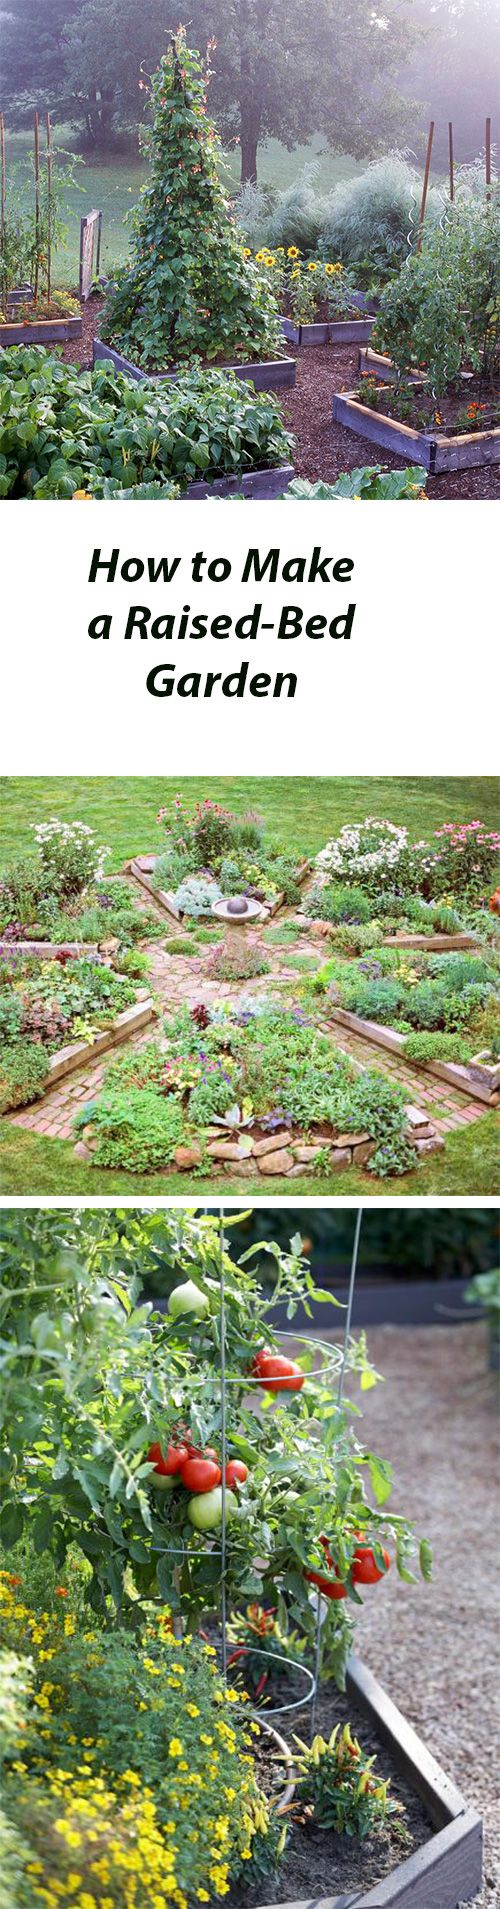 Best 20+ Raised herb garden ideas on Pinterest | Raised gardens ...